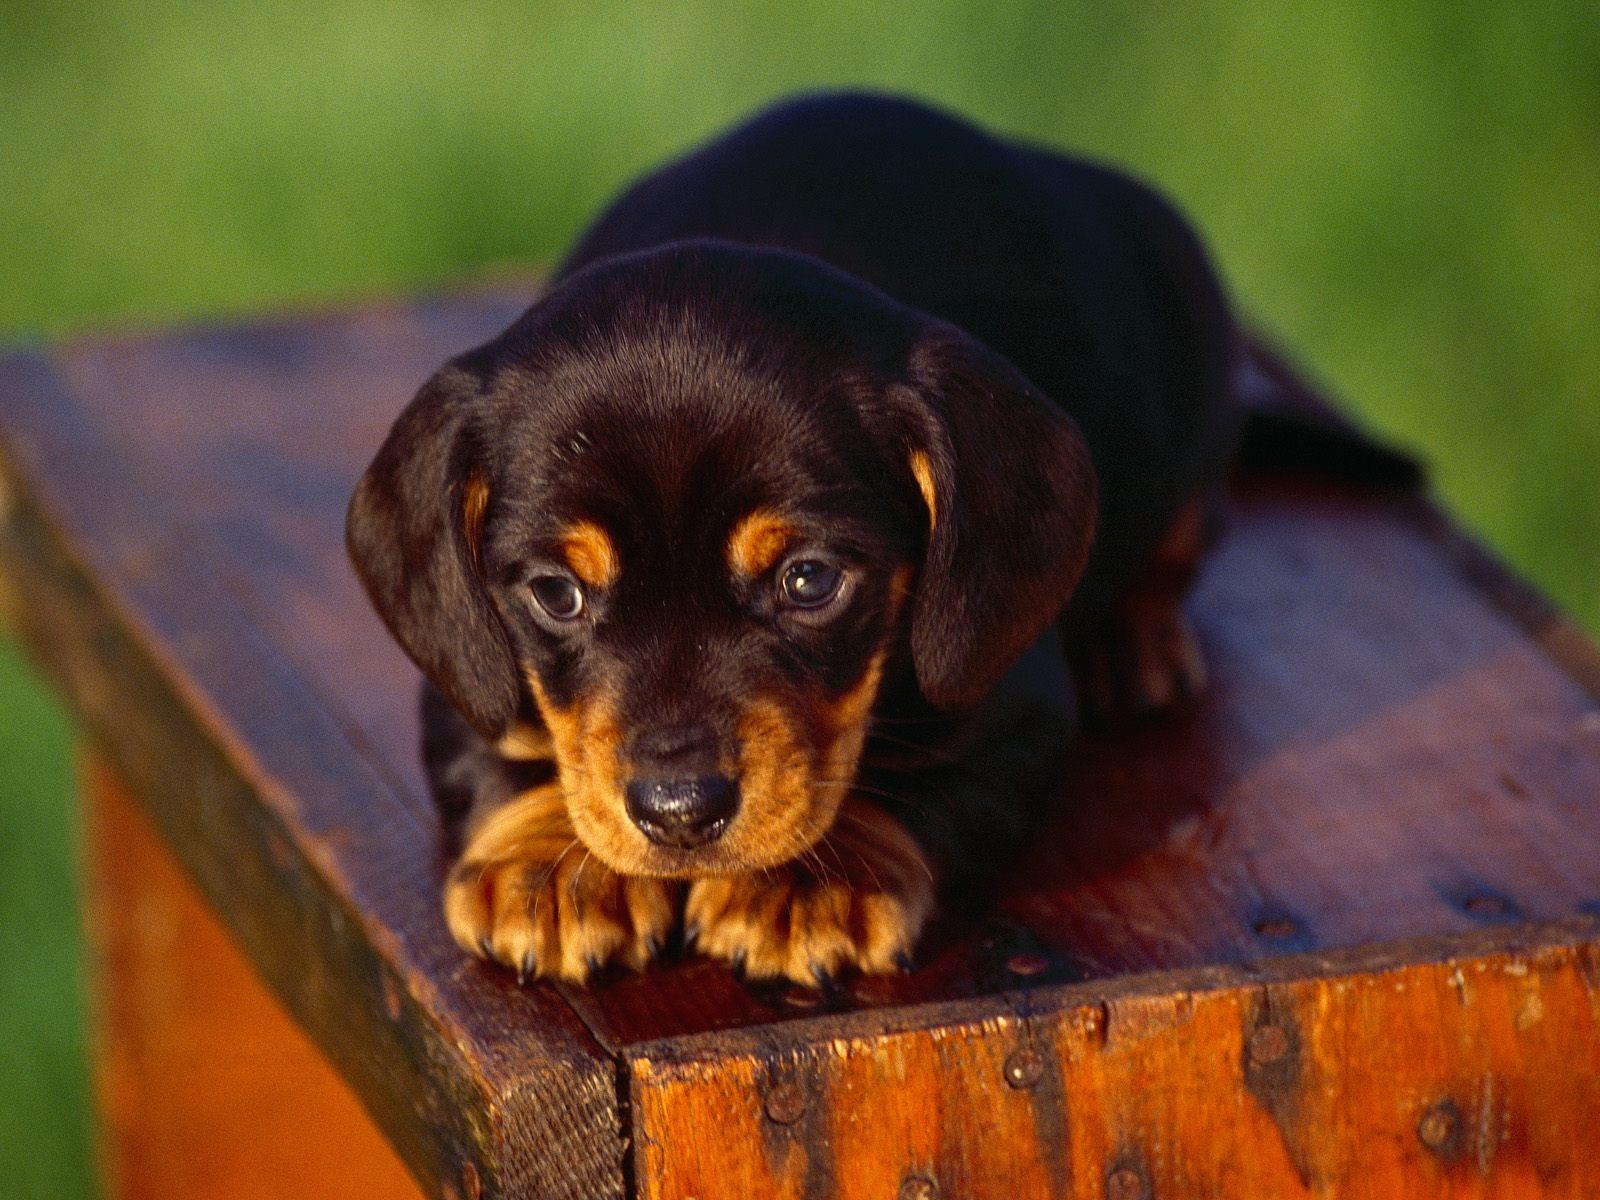 Gorgeus Black and Tan Coonhound dog hunting